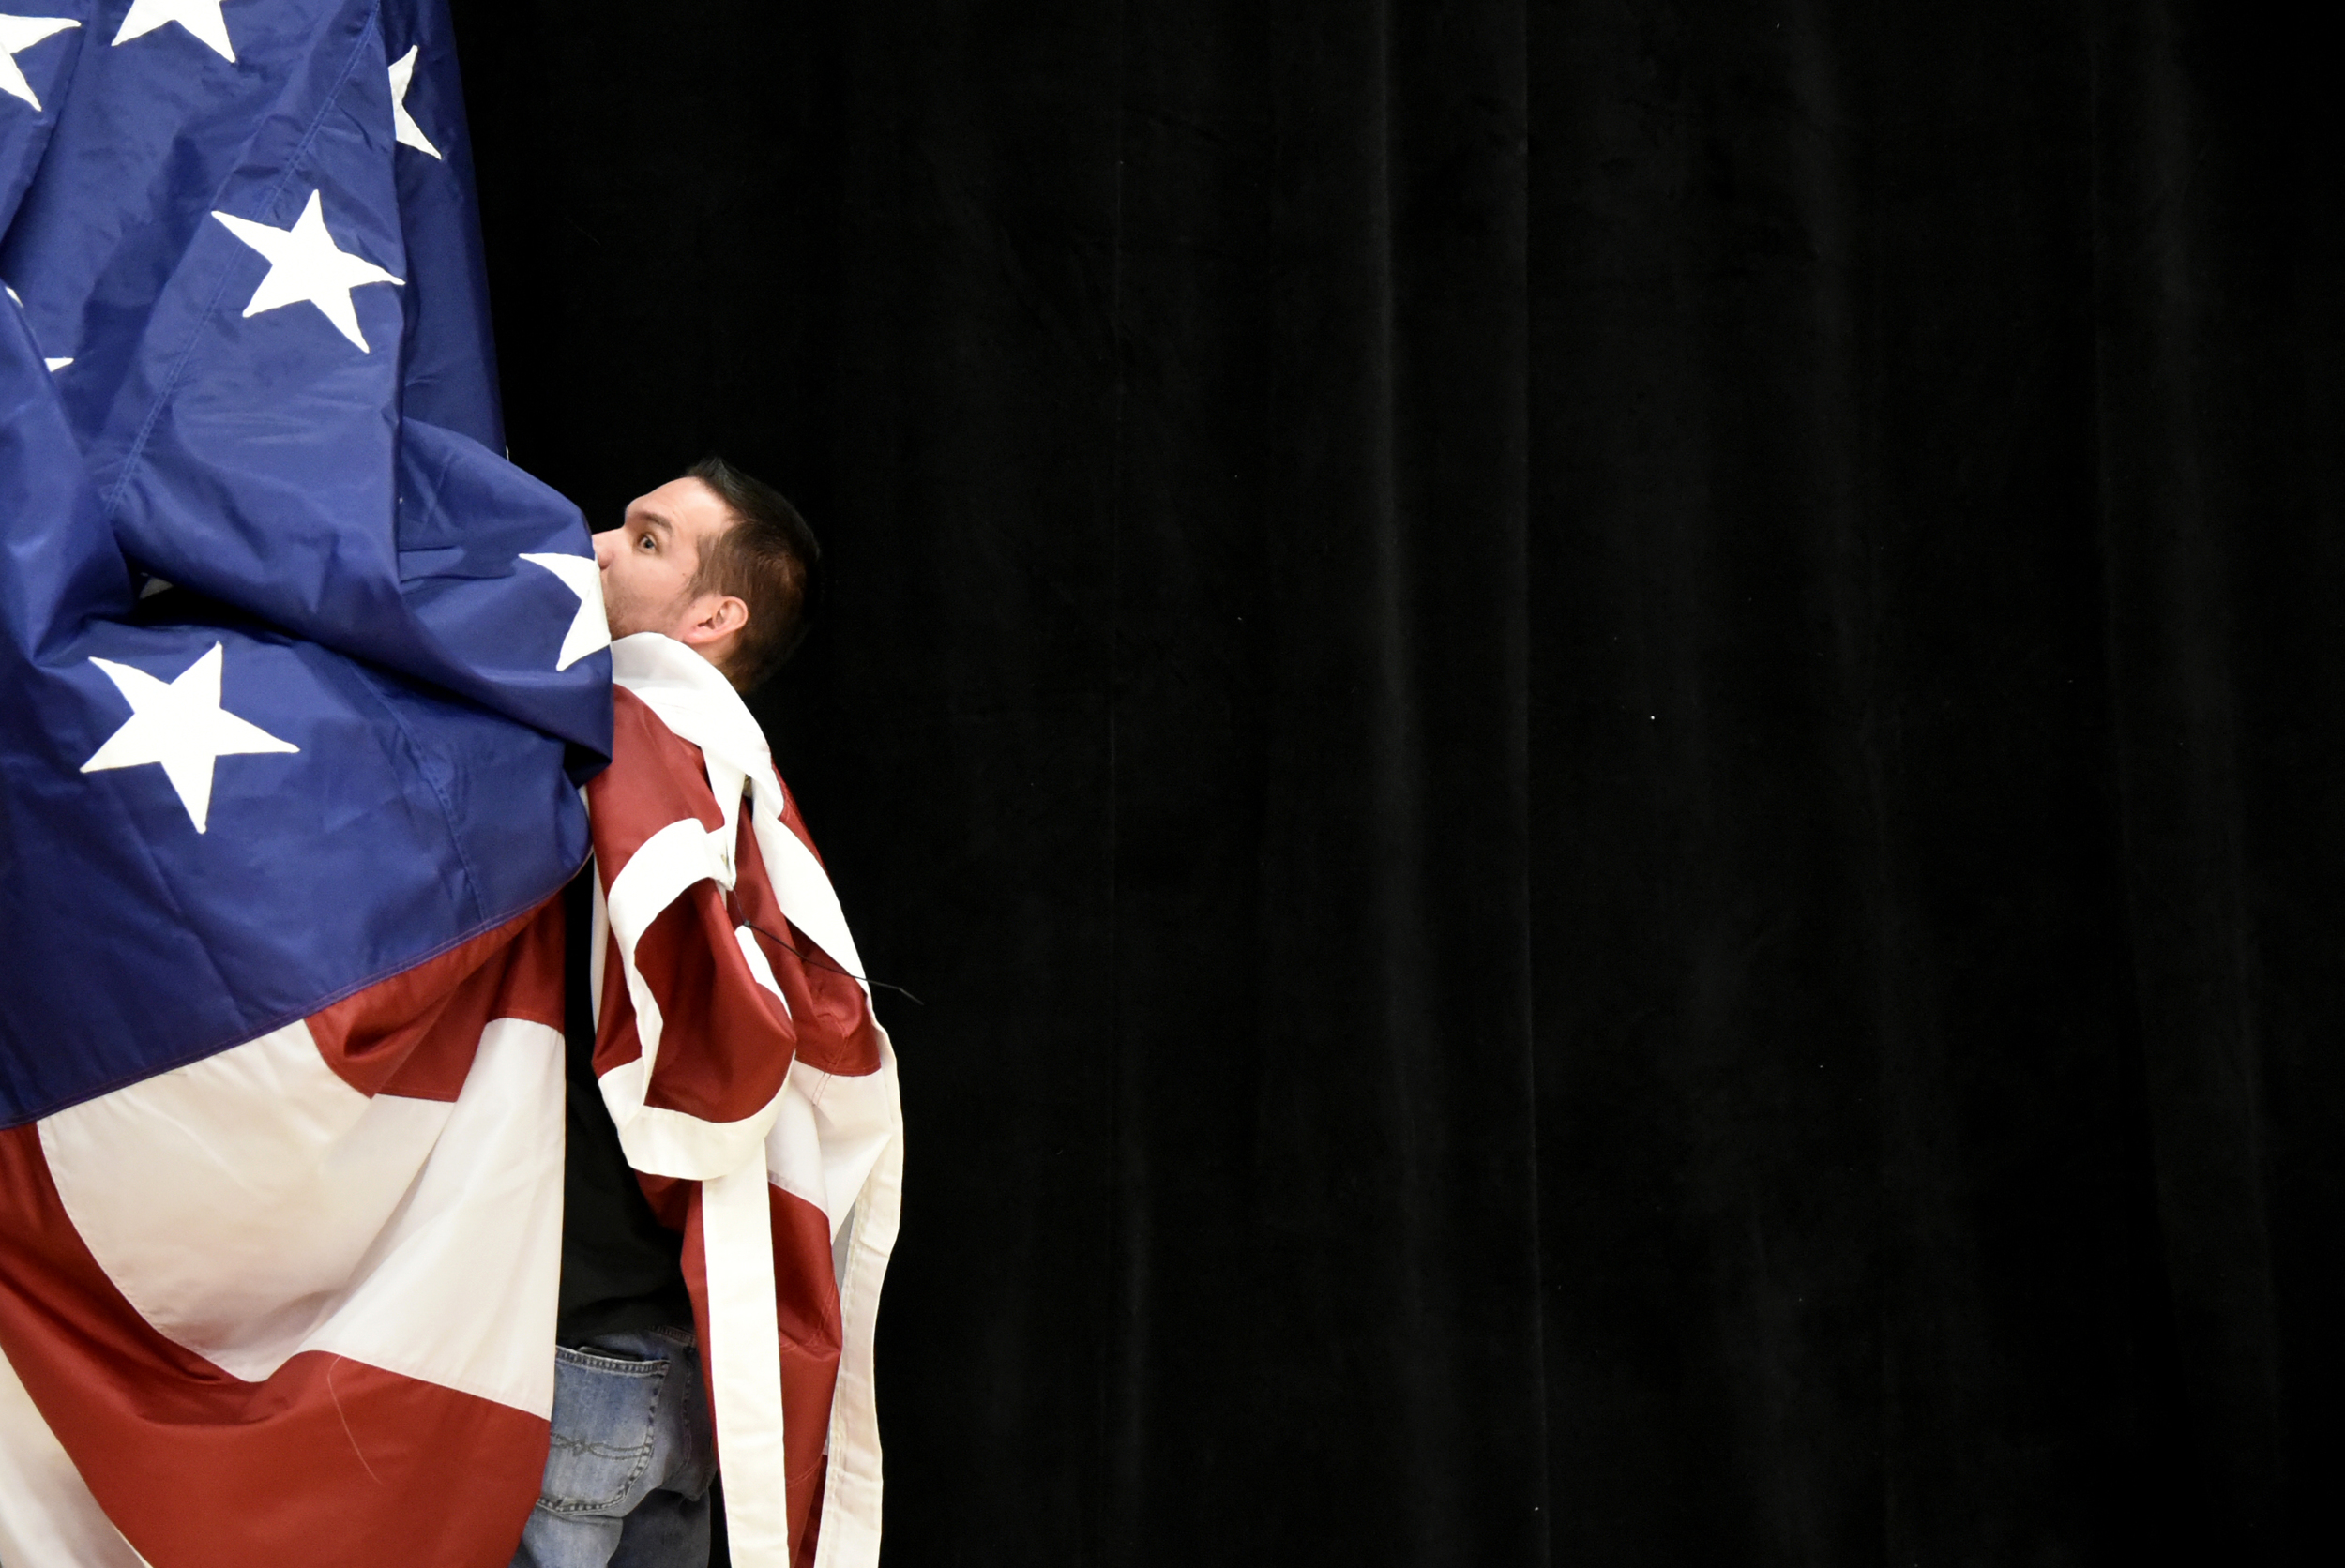 A campaign volunteer takes down the American flag after a rally for Republican presidential candidate Marco Rubio in Oklahoma City on the eve of Super Tuesday.